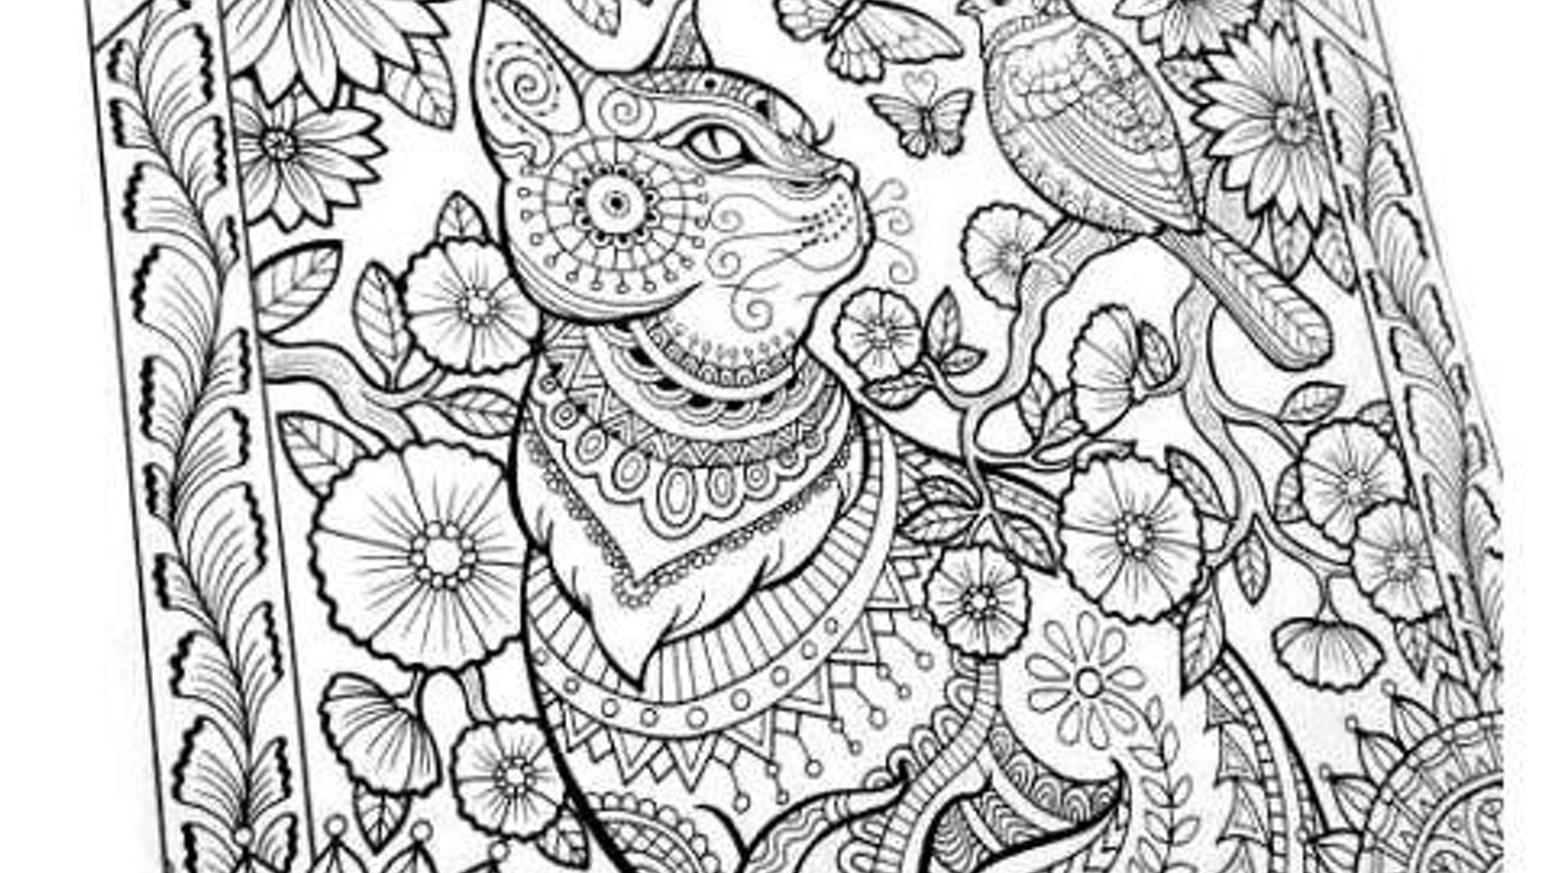 Coloring Book For Adults Large Spiral Bound By Jan Bevins